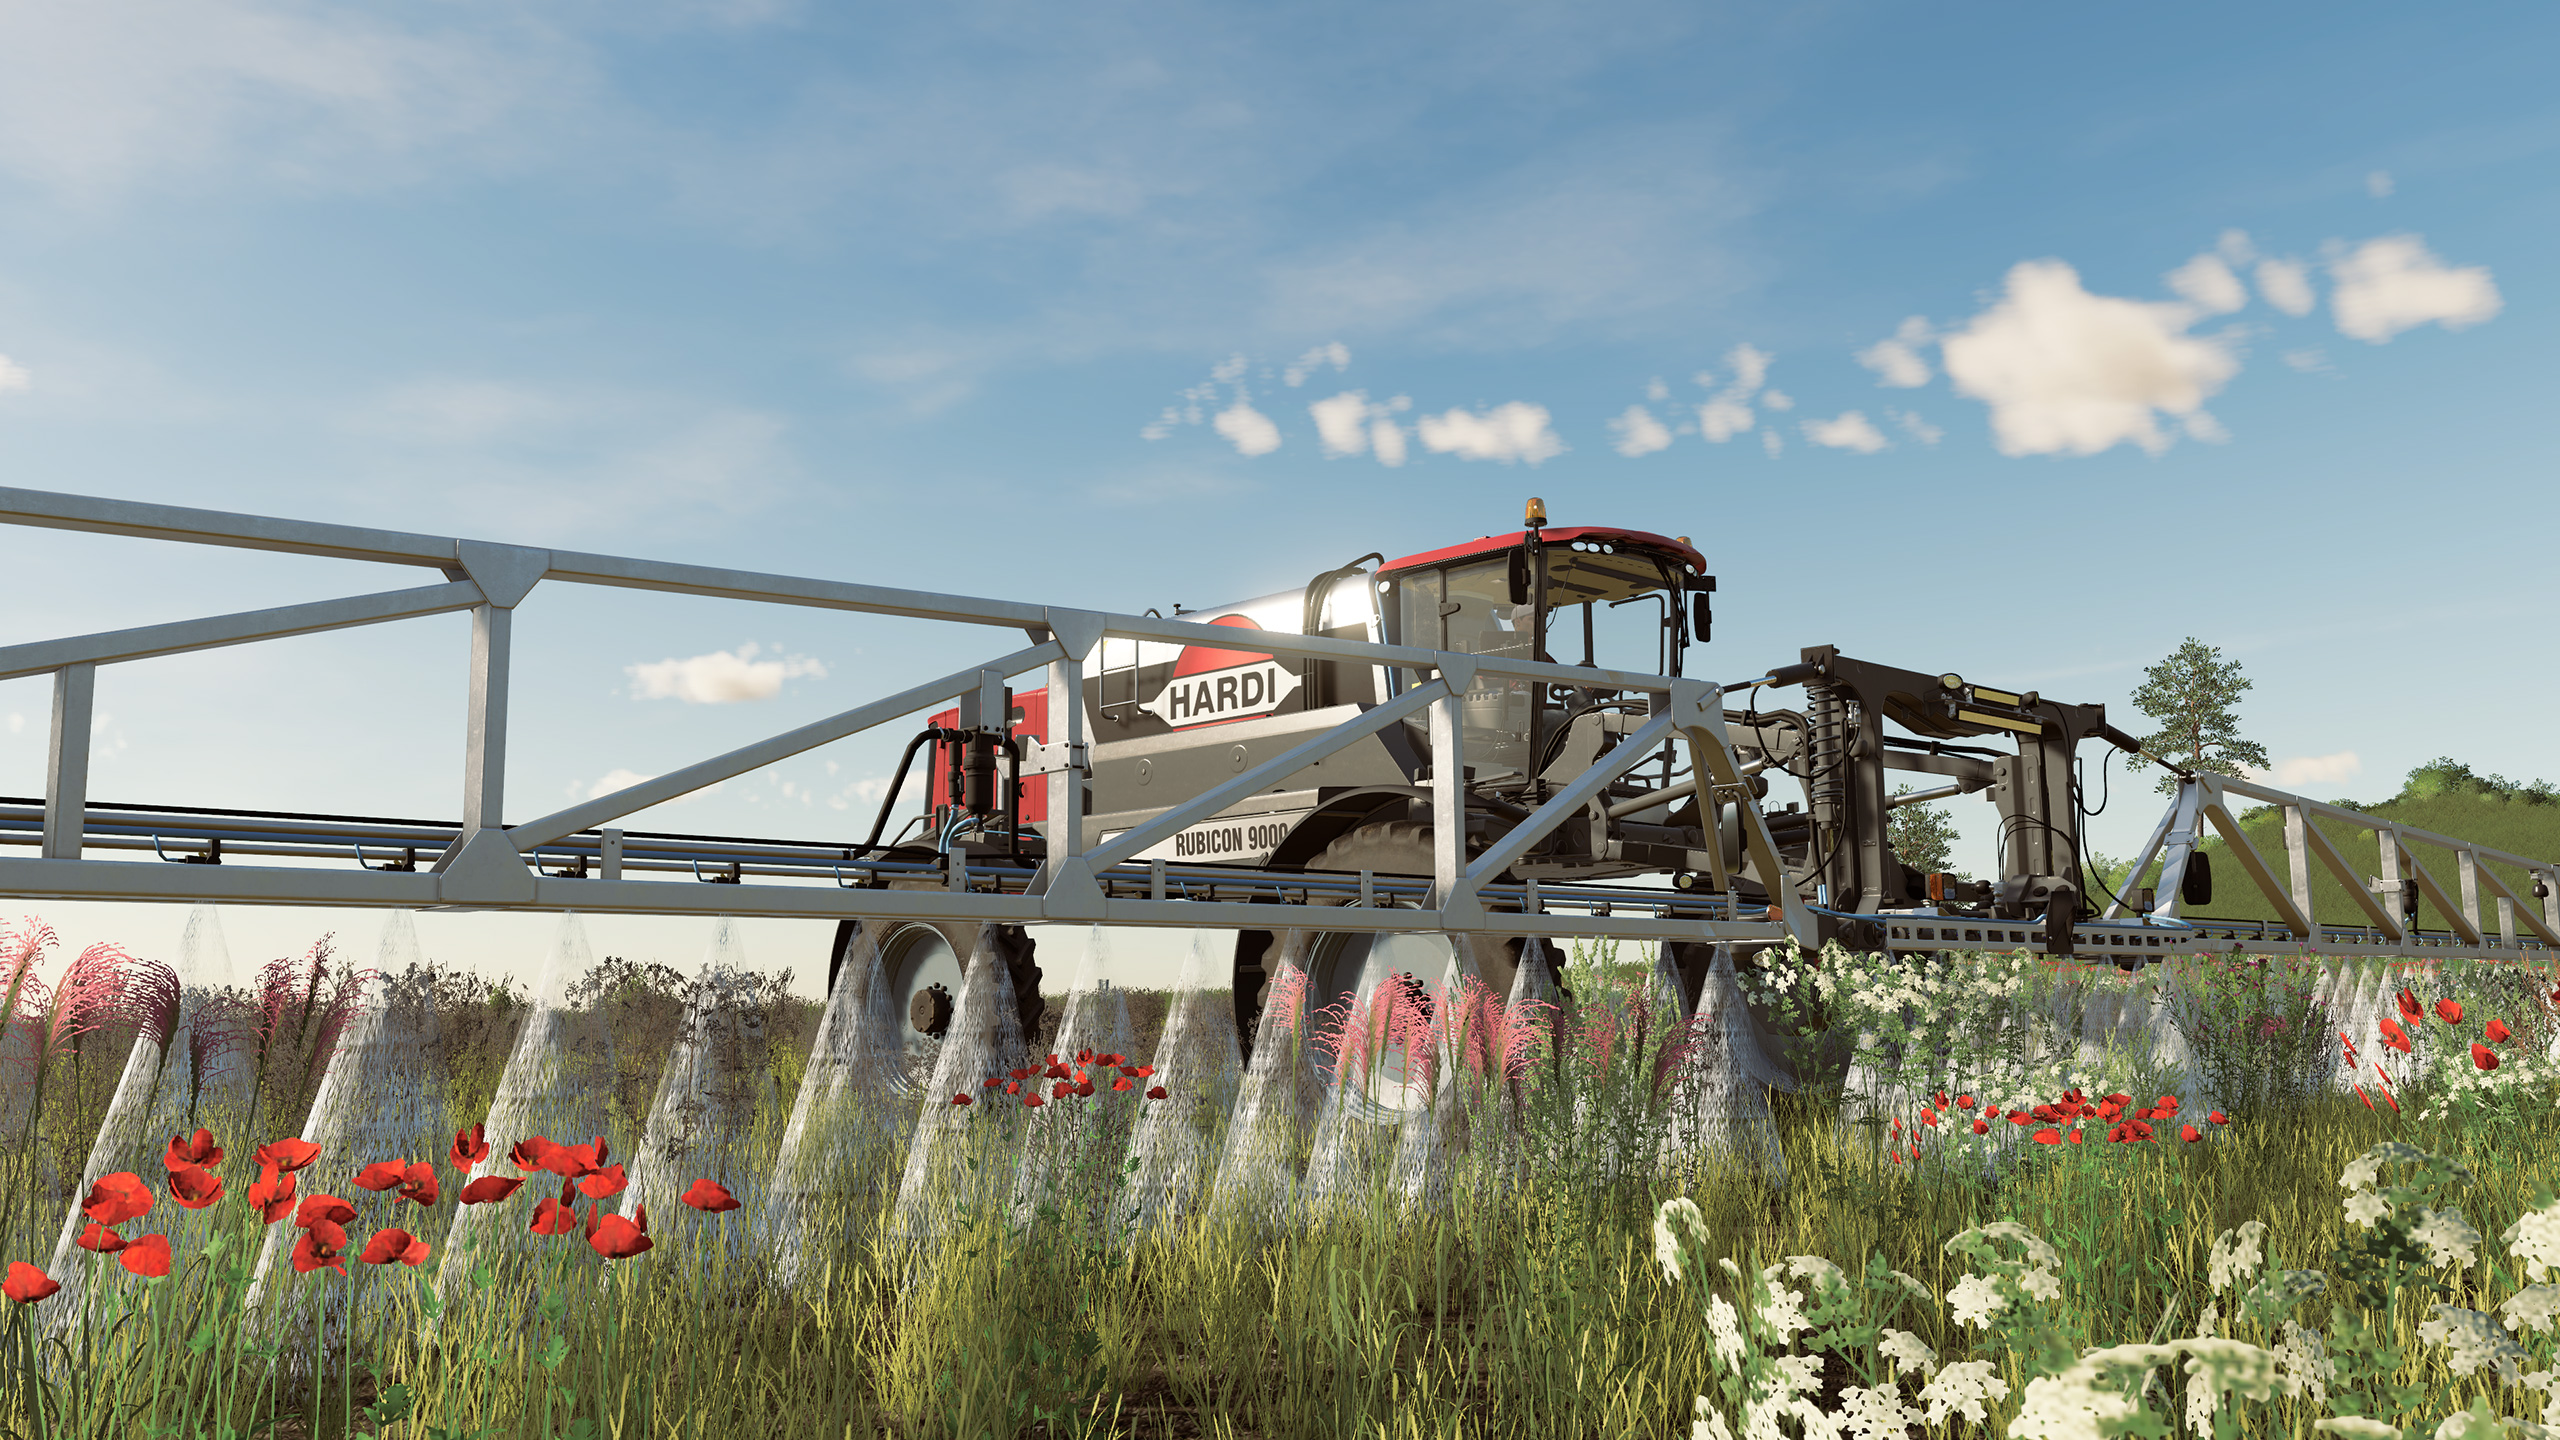 Farming Simulator 19's New Crops, Weed System Detailed in